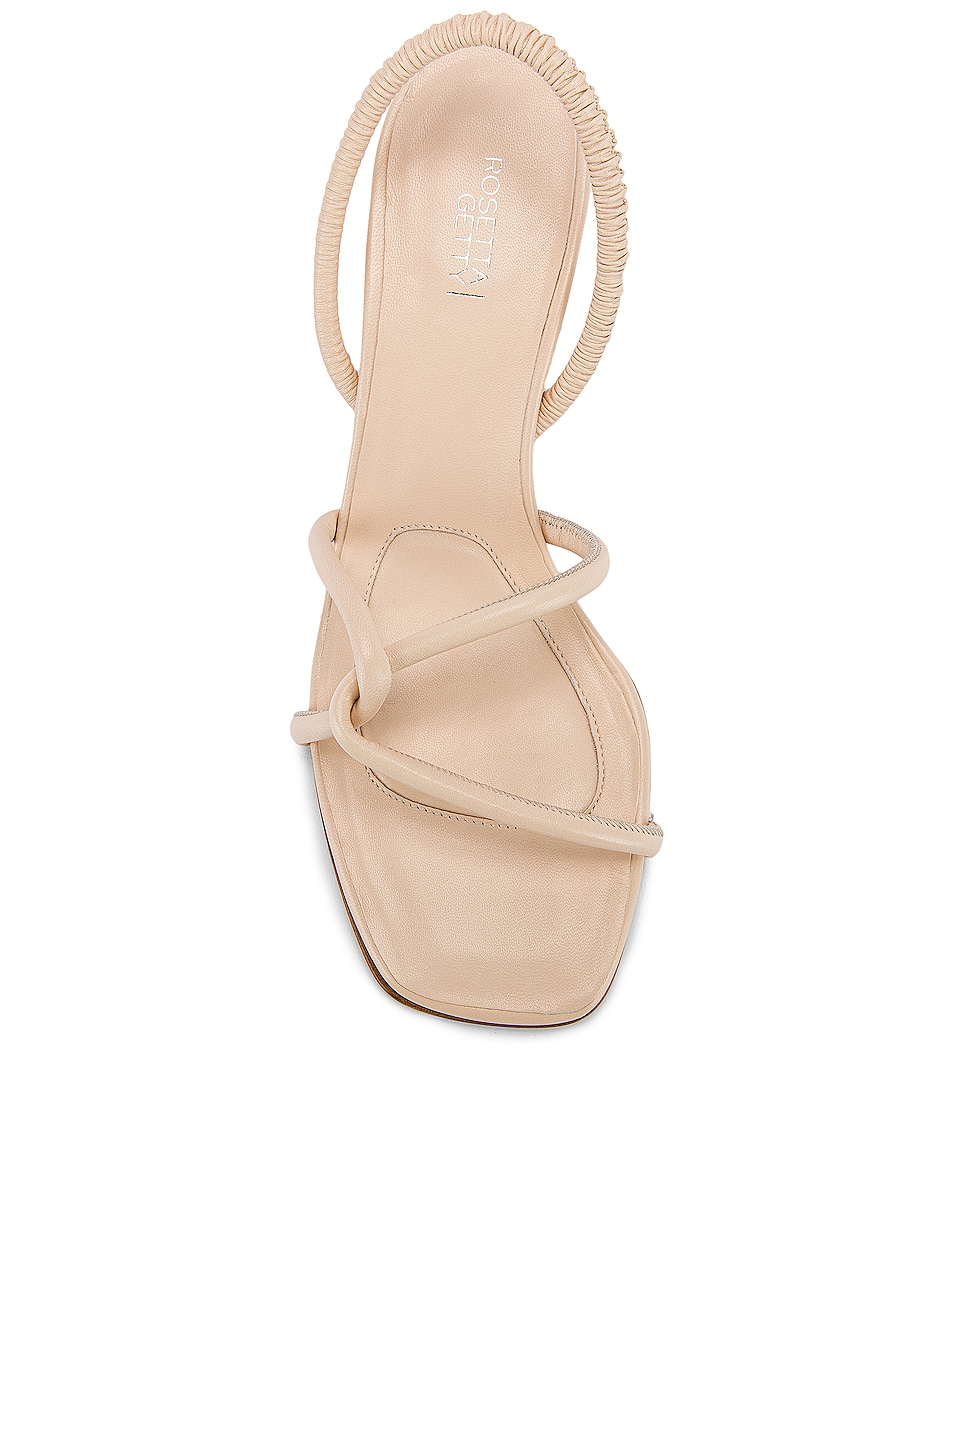 Image 4 of Rosetta Getty Strappy Heeled Slingback Sandals in Parchment